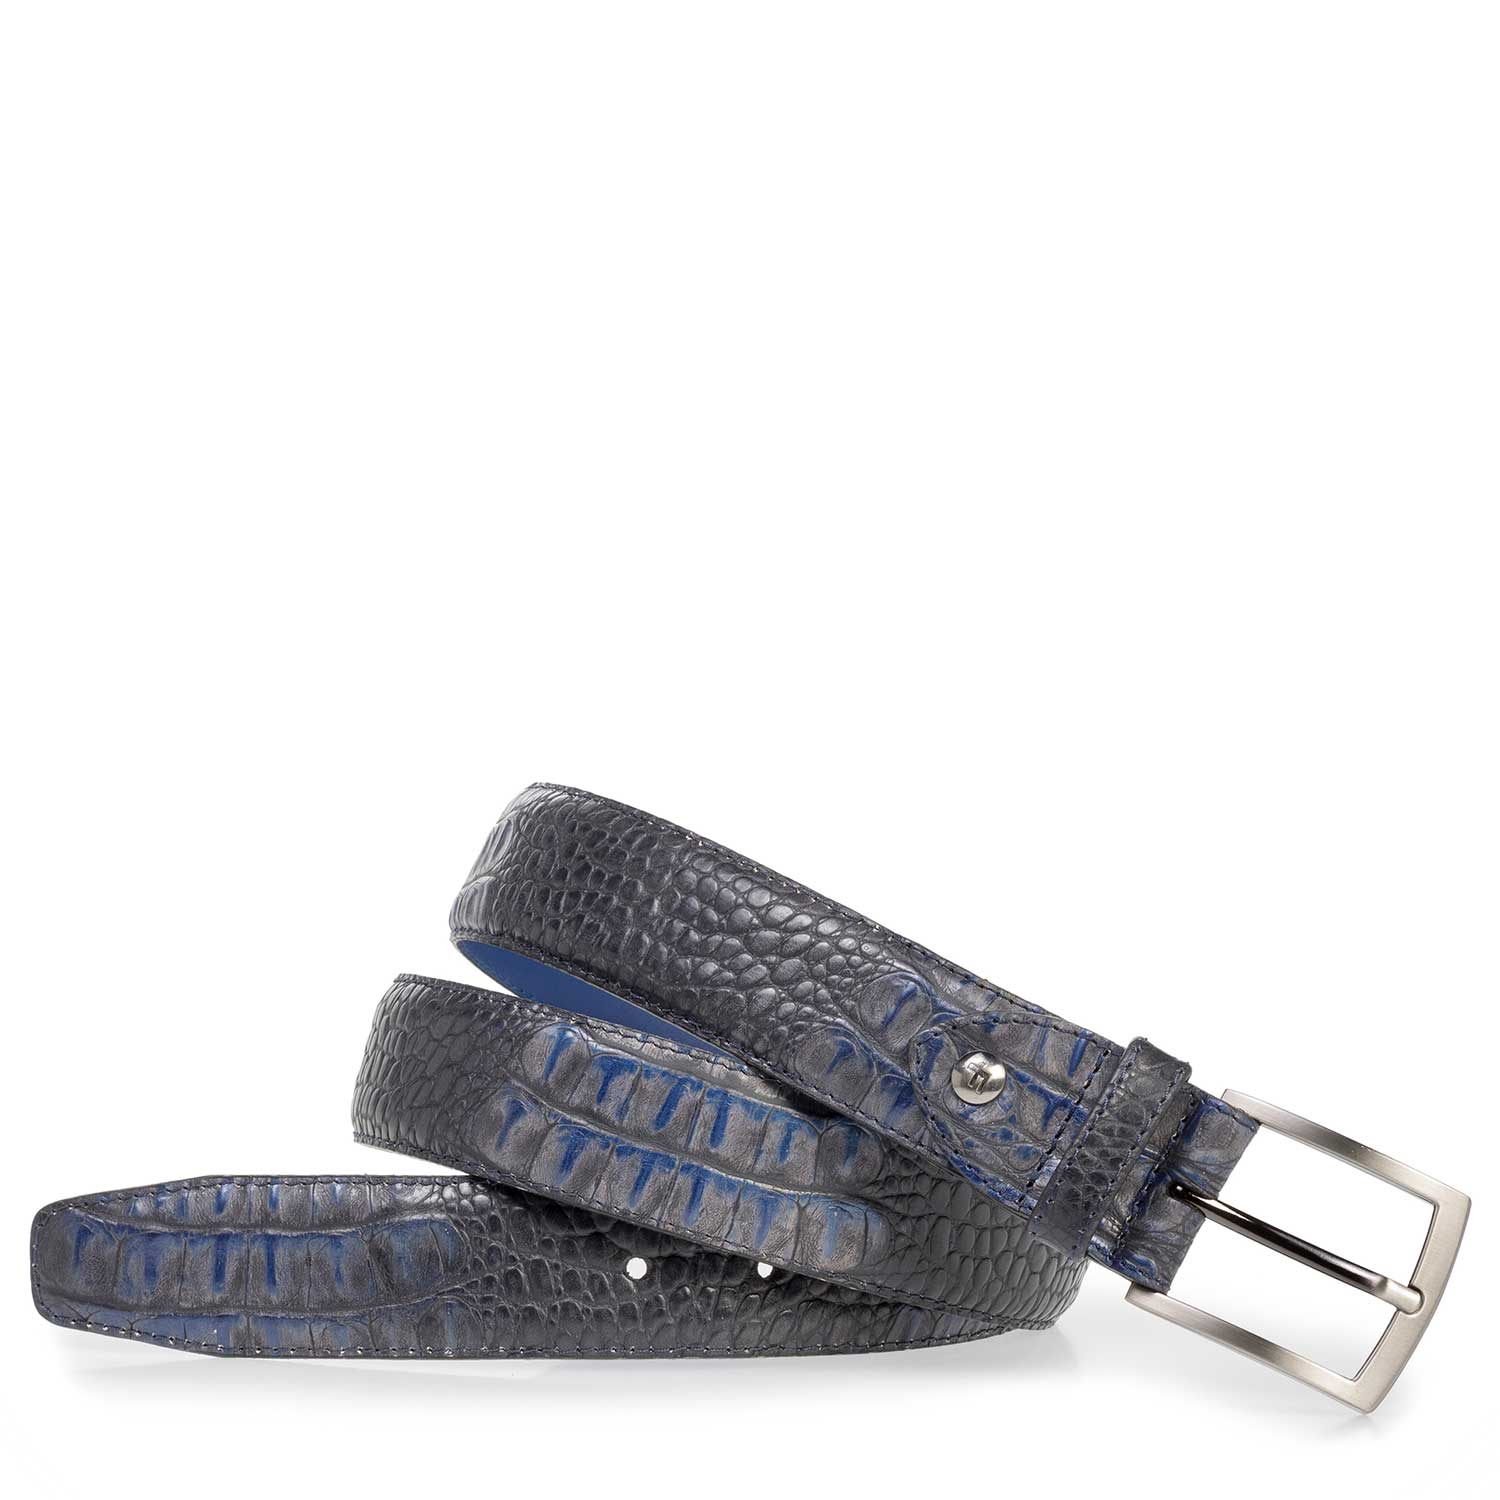 75201/35 - Blue leather belt with croco print